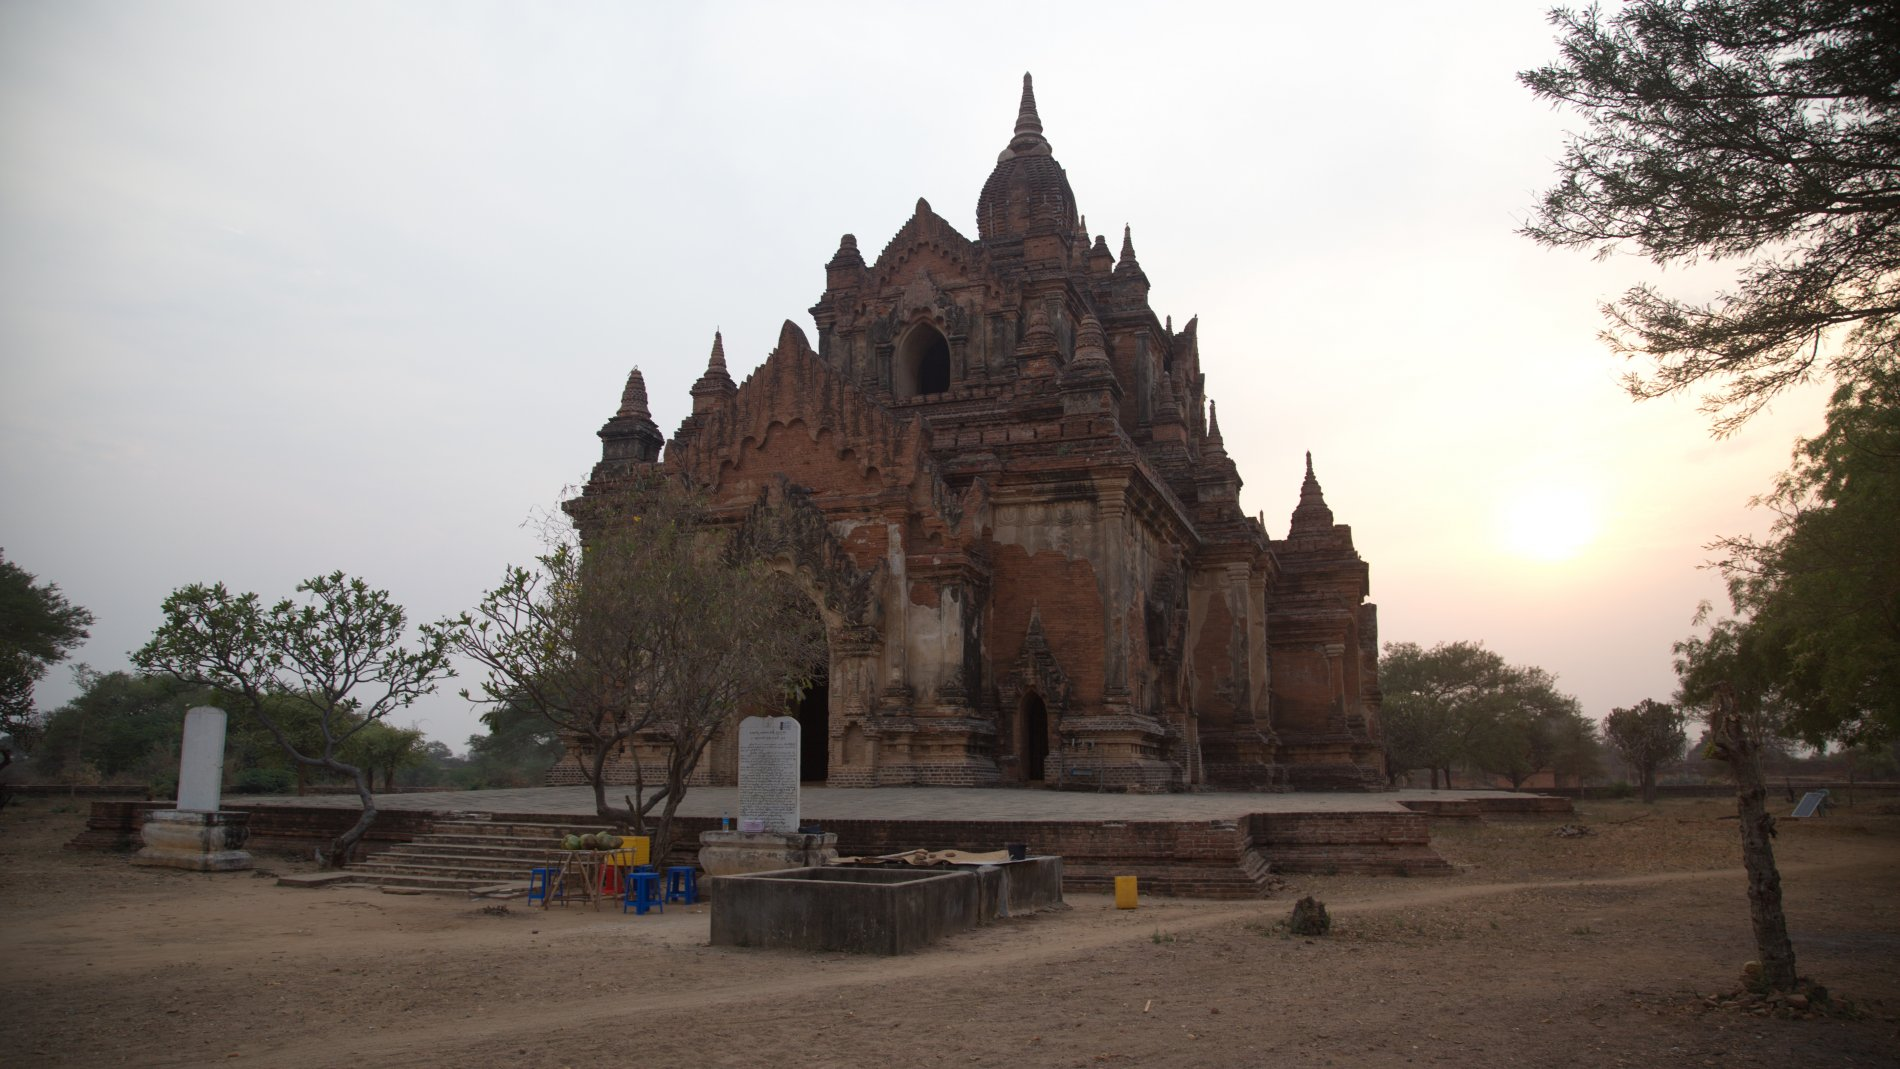 Bagan_027.jpg-commment